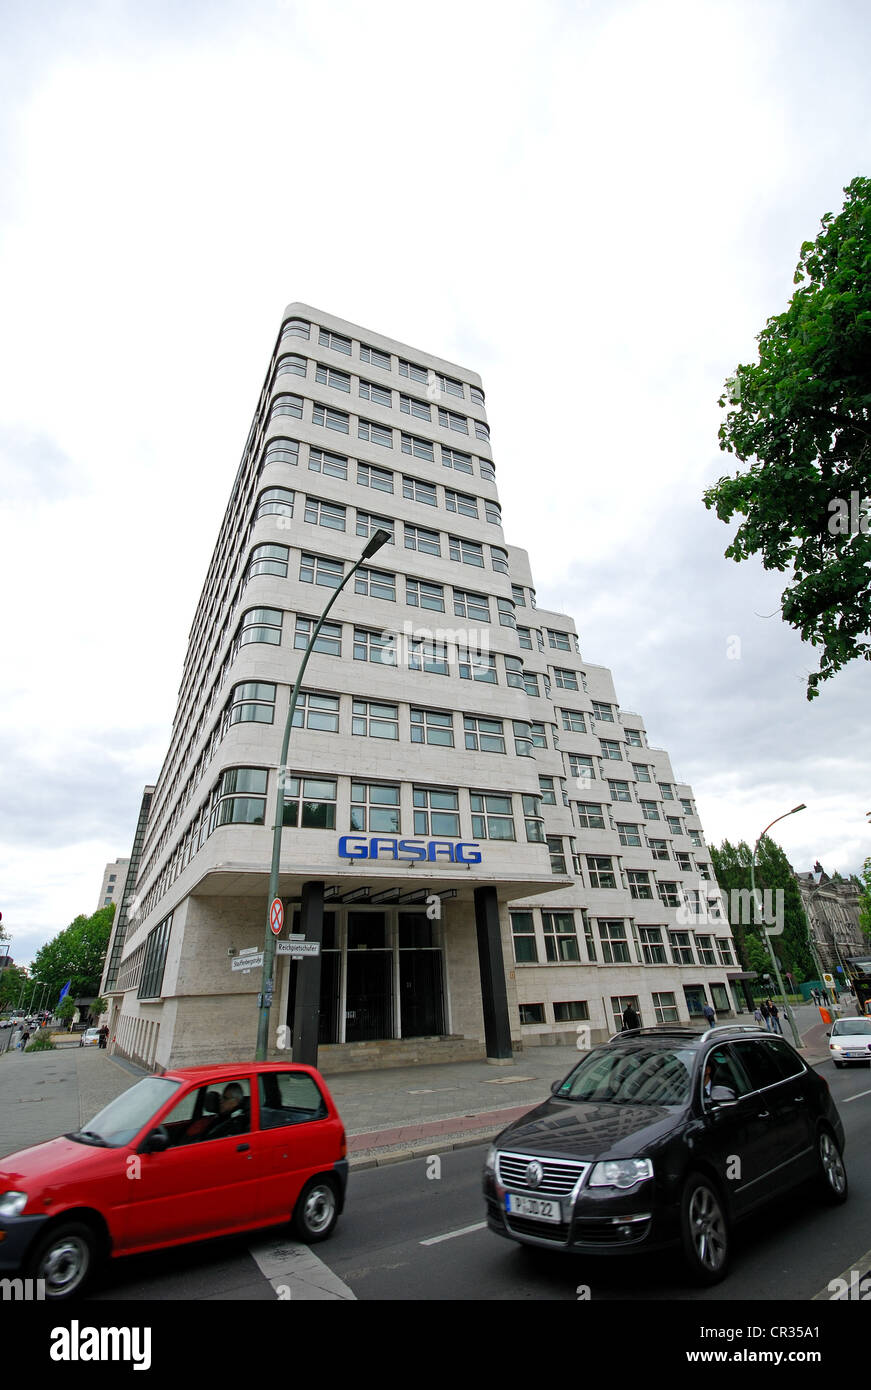 shell building berlin stock photos shell building berlin stock images alamy. Black Bedroom Furniture Sets. Home Design Ideas